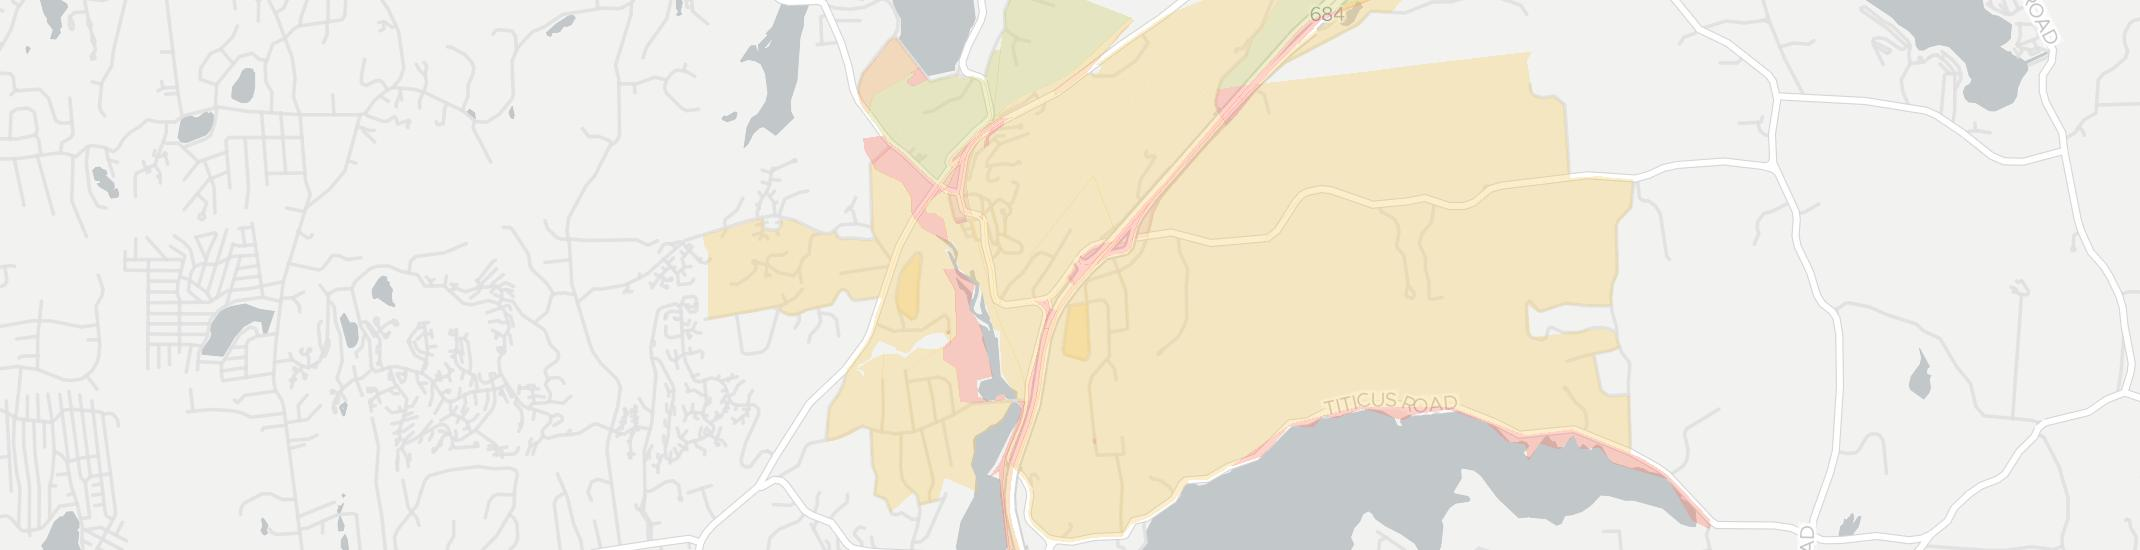 Croton Falls Internet Competition Map. Click for interactive map.